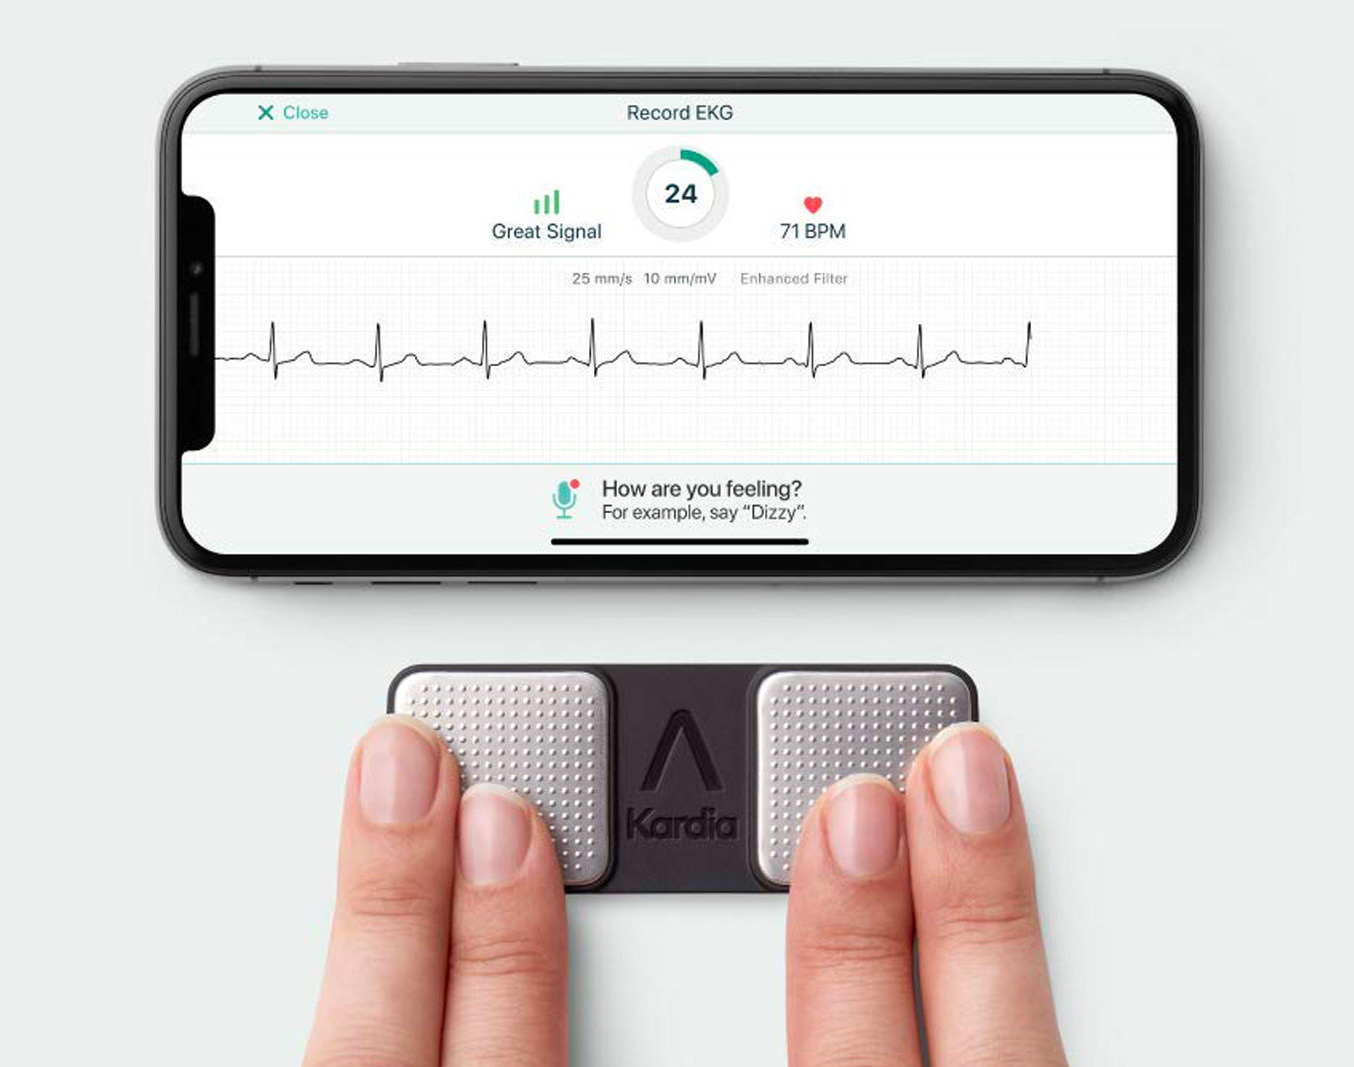 This iPhone EKG is 66% More Powerful than Apple Watch at werd.com